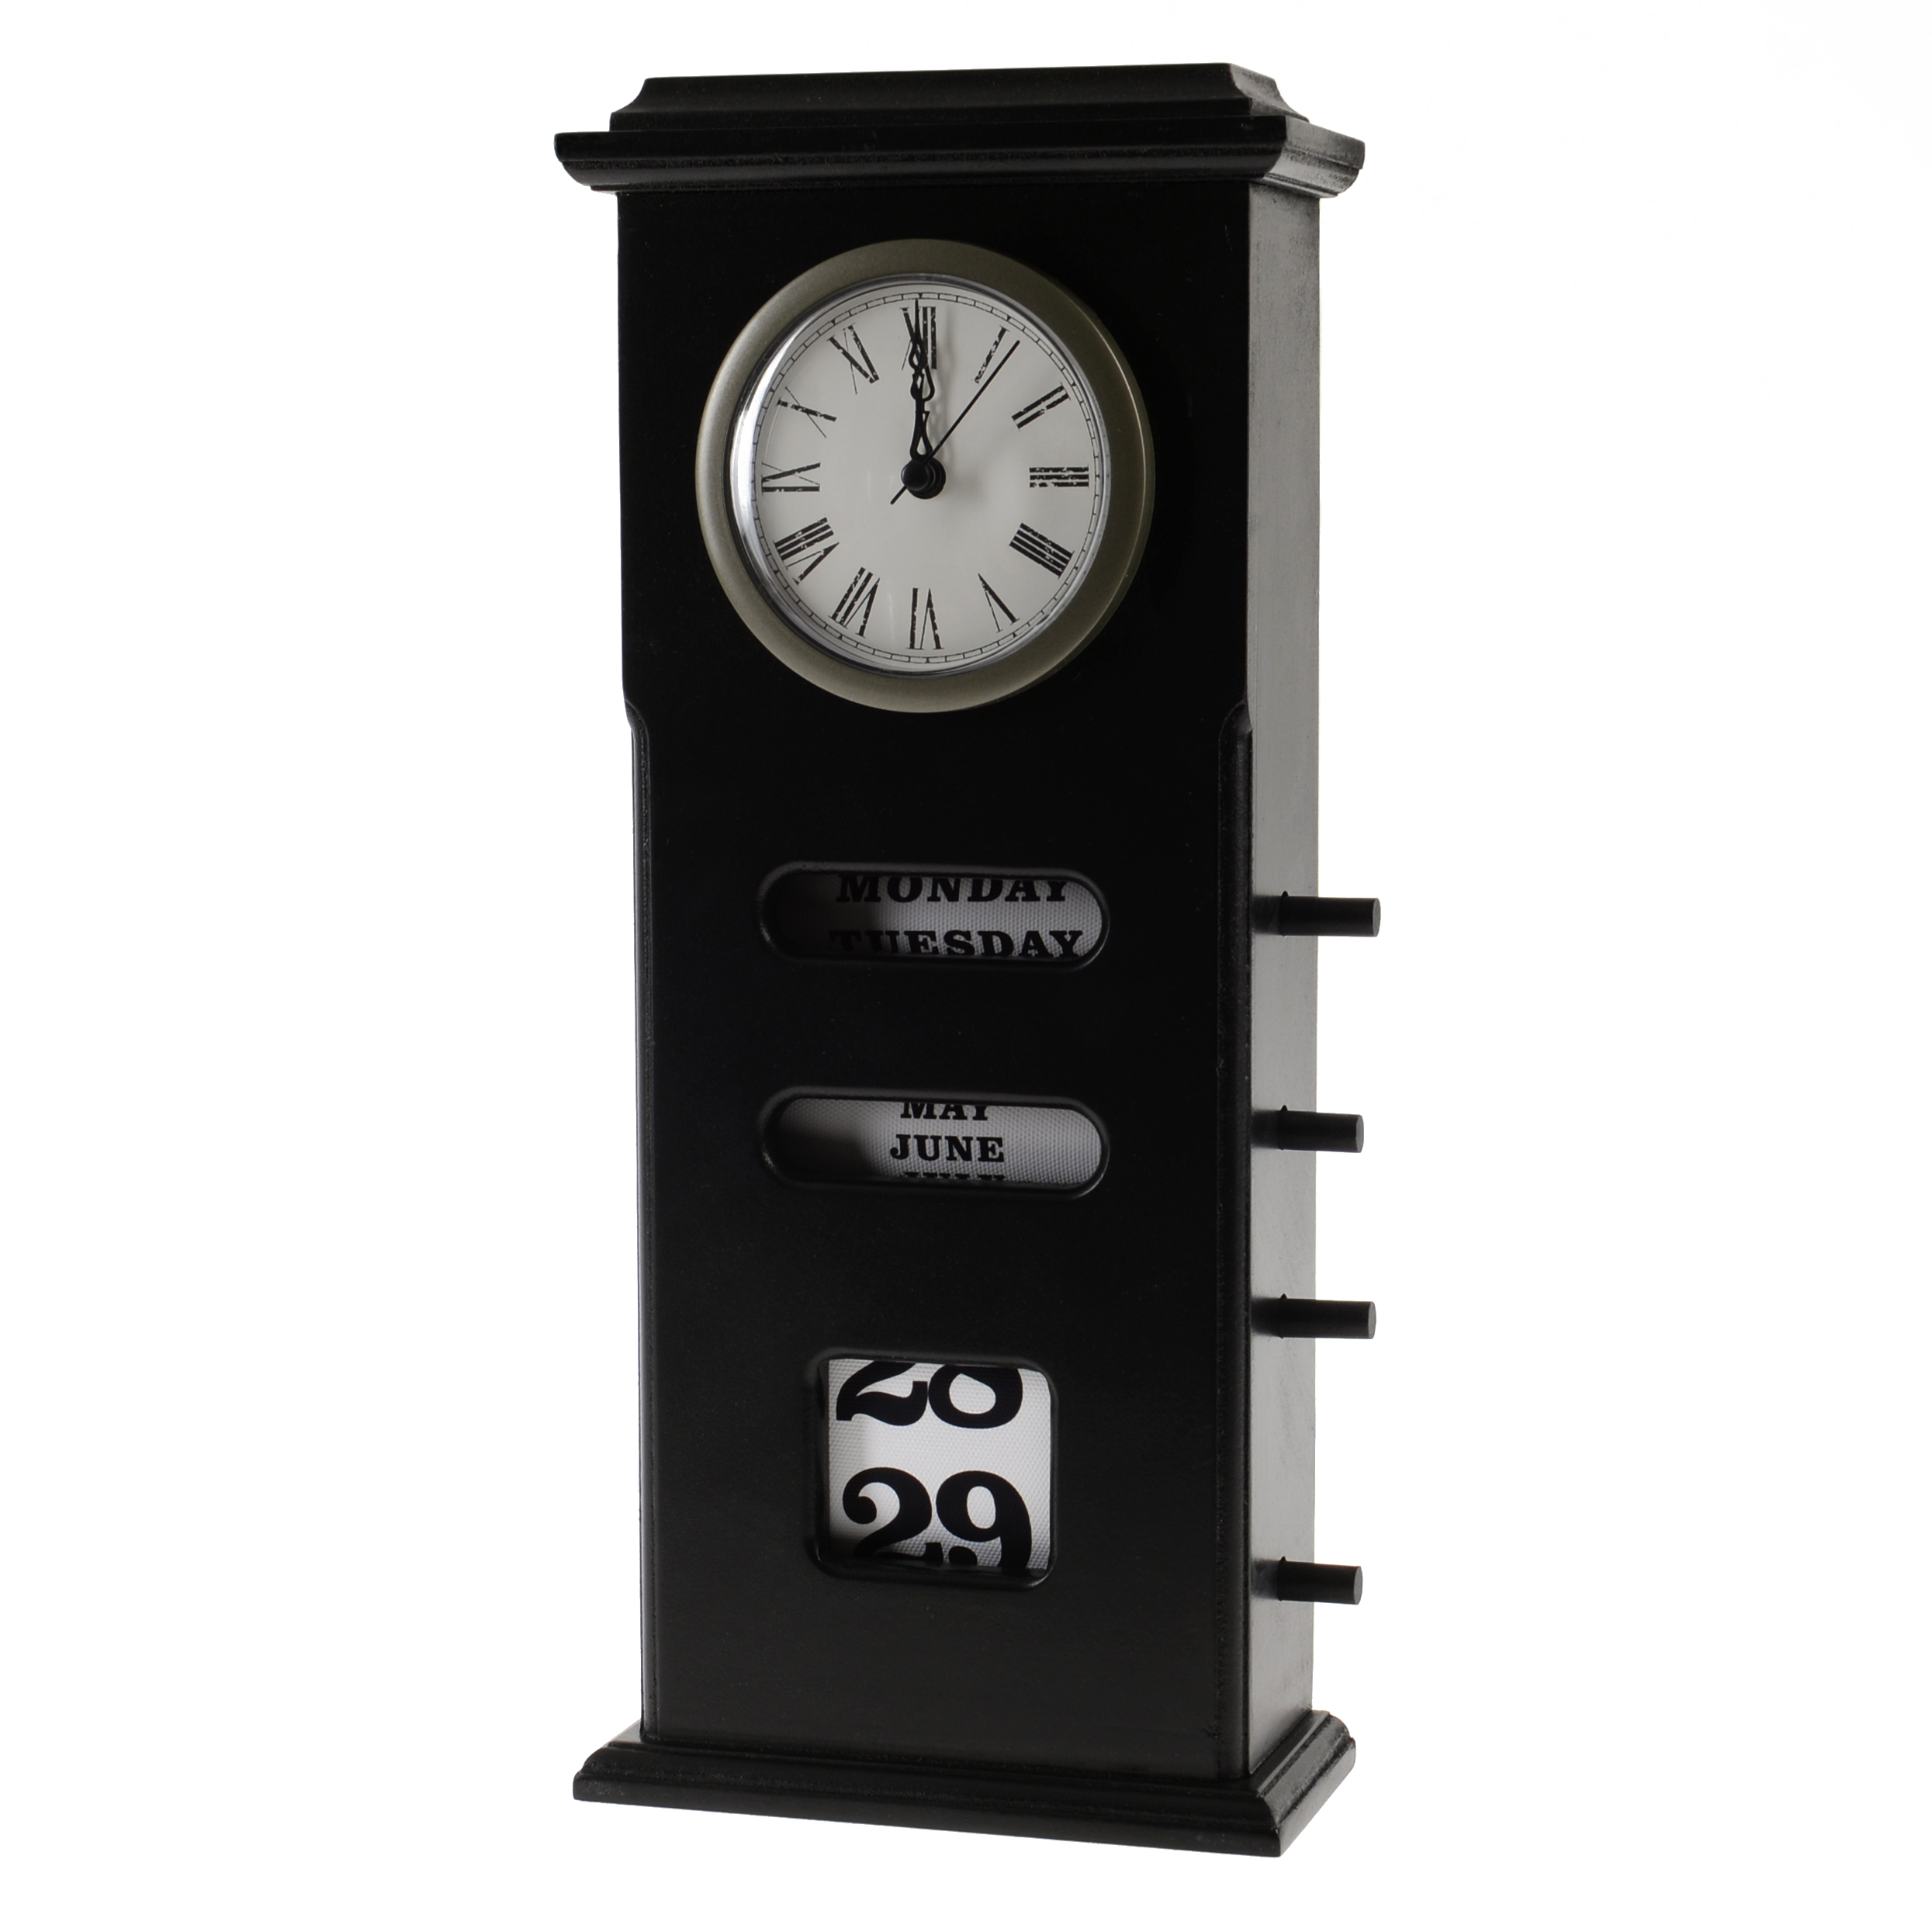 €32 MDF TABLE CLOCK IN BLACK COLOR 17X17X37